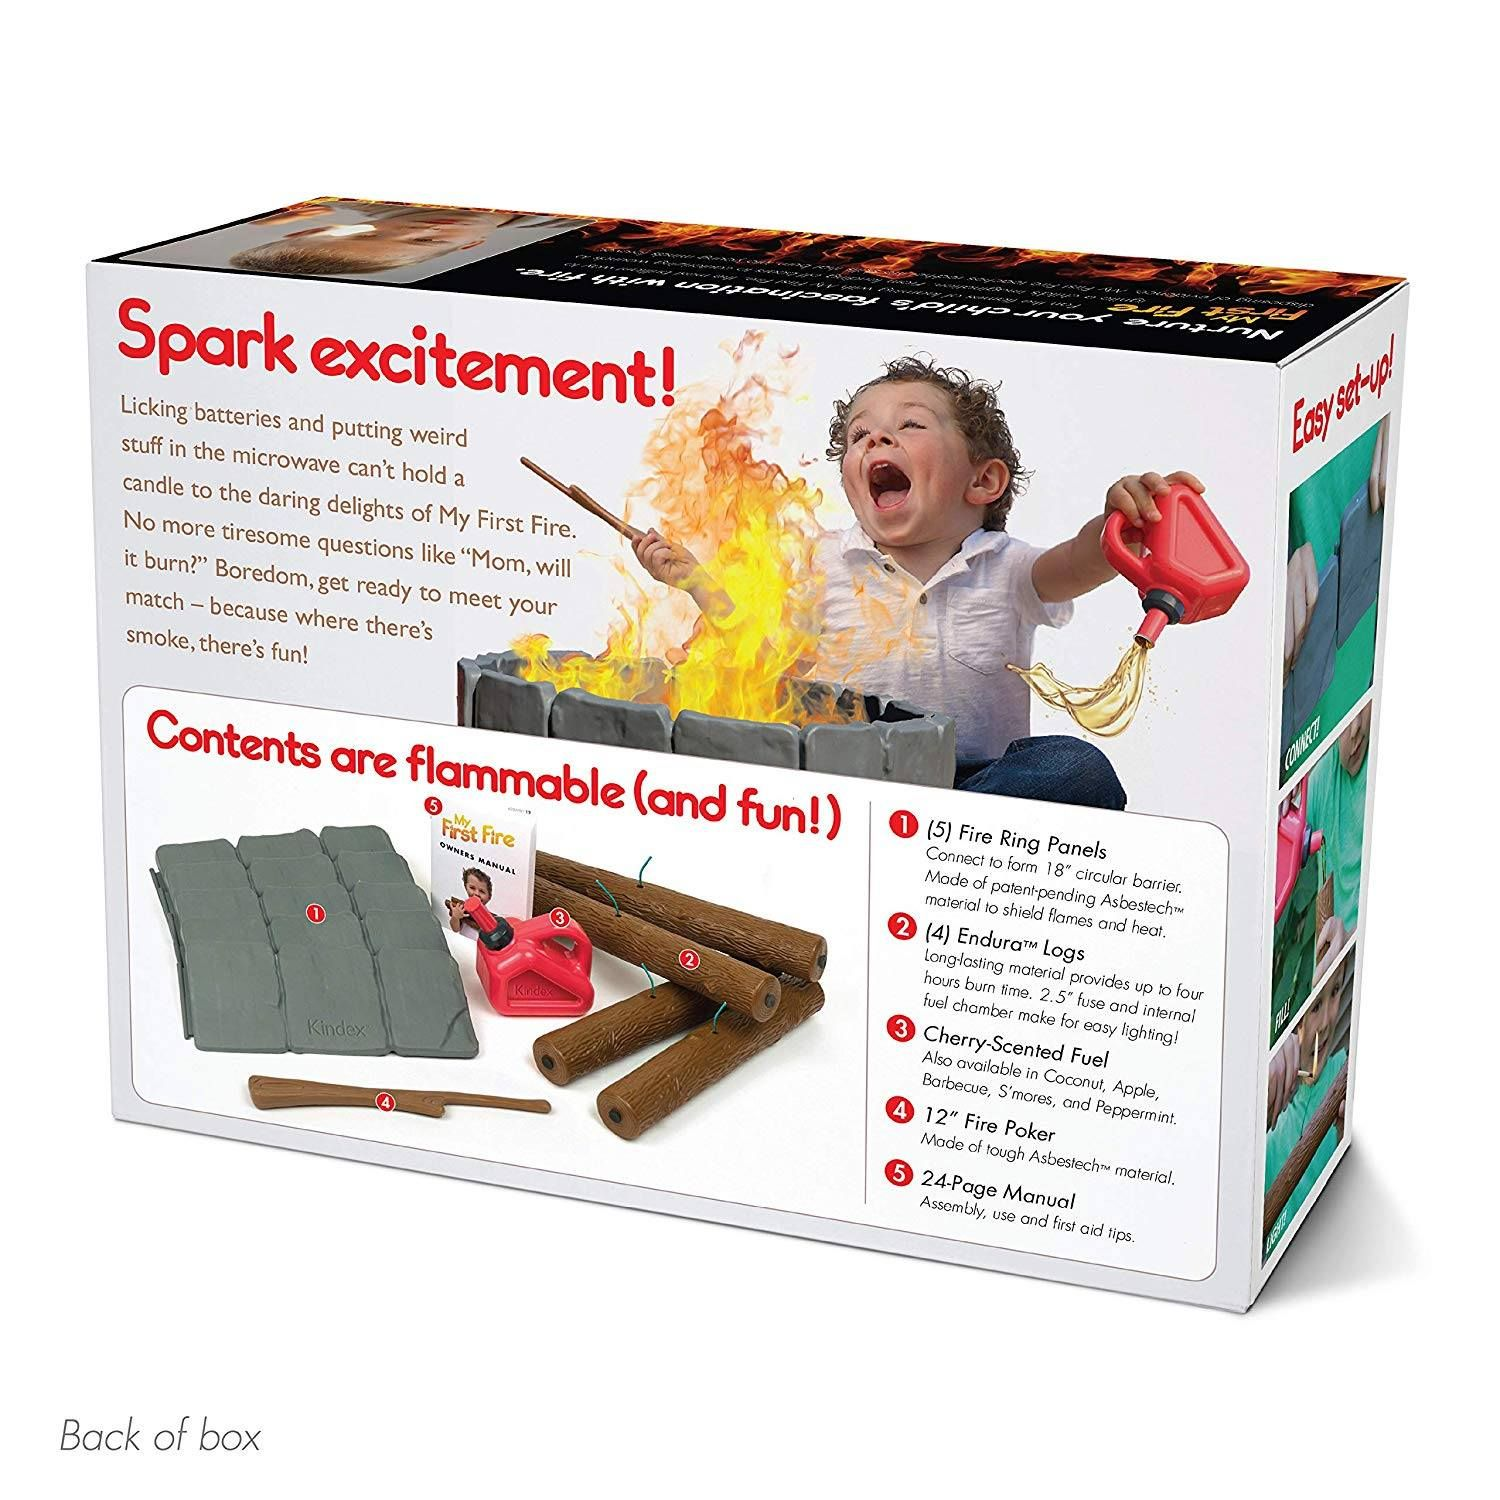 Contents are flammable and fun funny funny joke